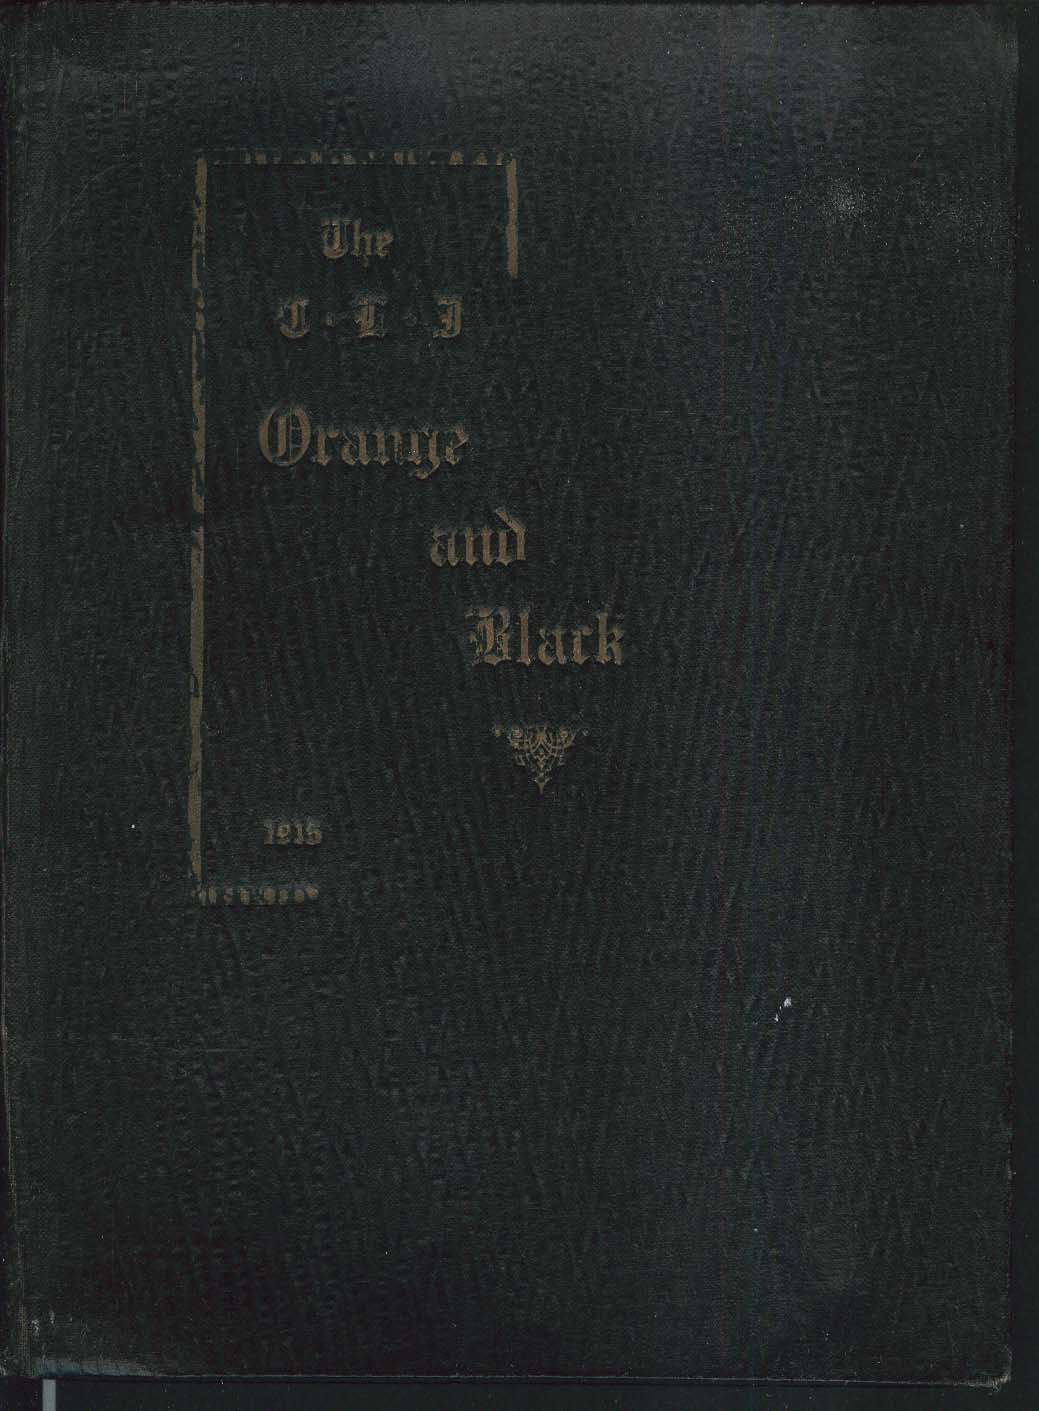 Image for The CLI Connecticut Learning Institute Orange & Black 1915 Yearbook